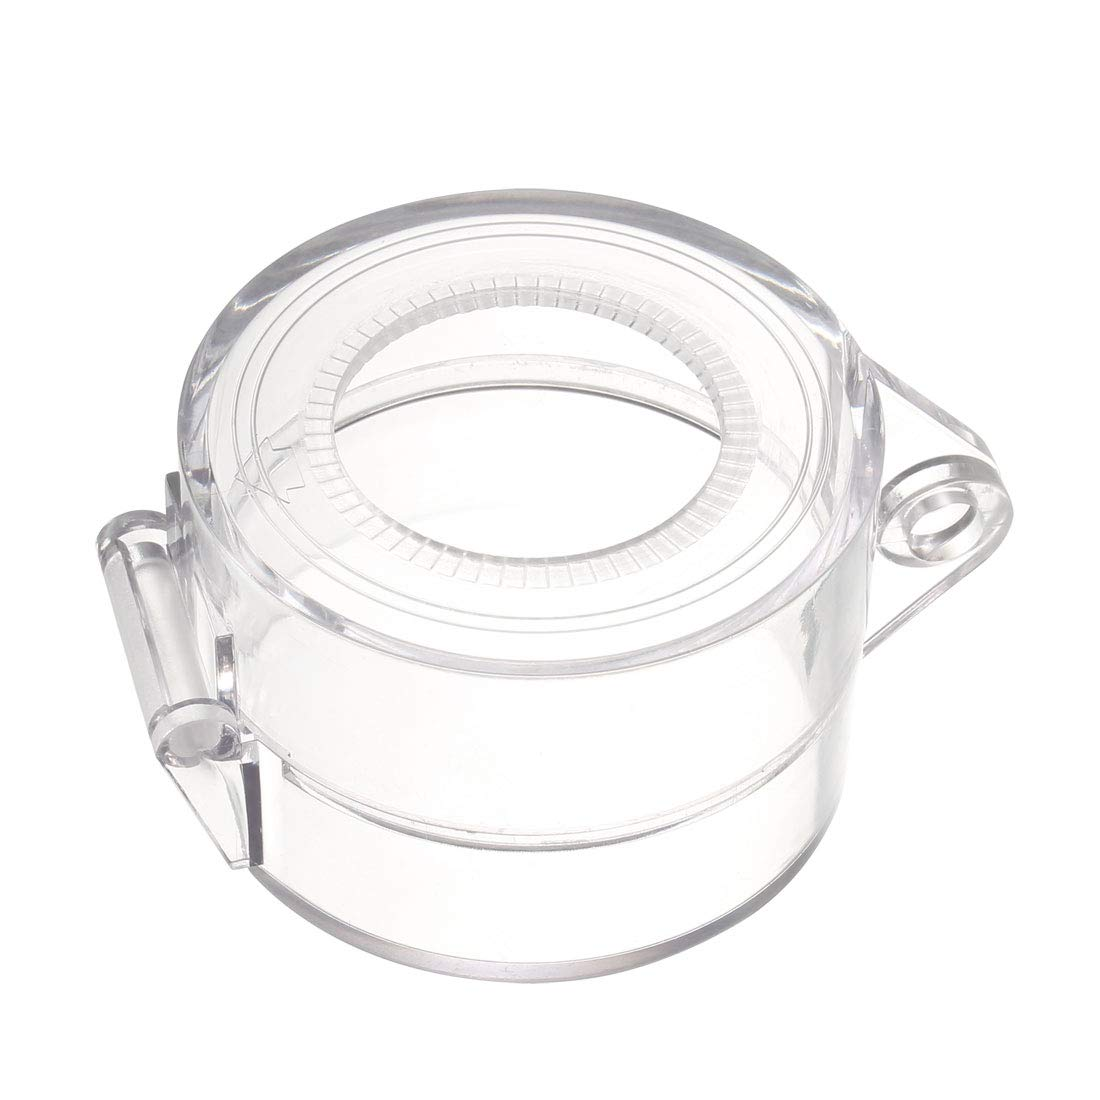 uxcell 2pcs Clear Plasatic Switch Cover Protector for 30mm Diameter Push Button Switch 5543